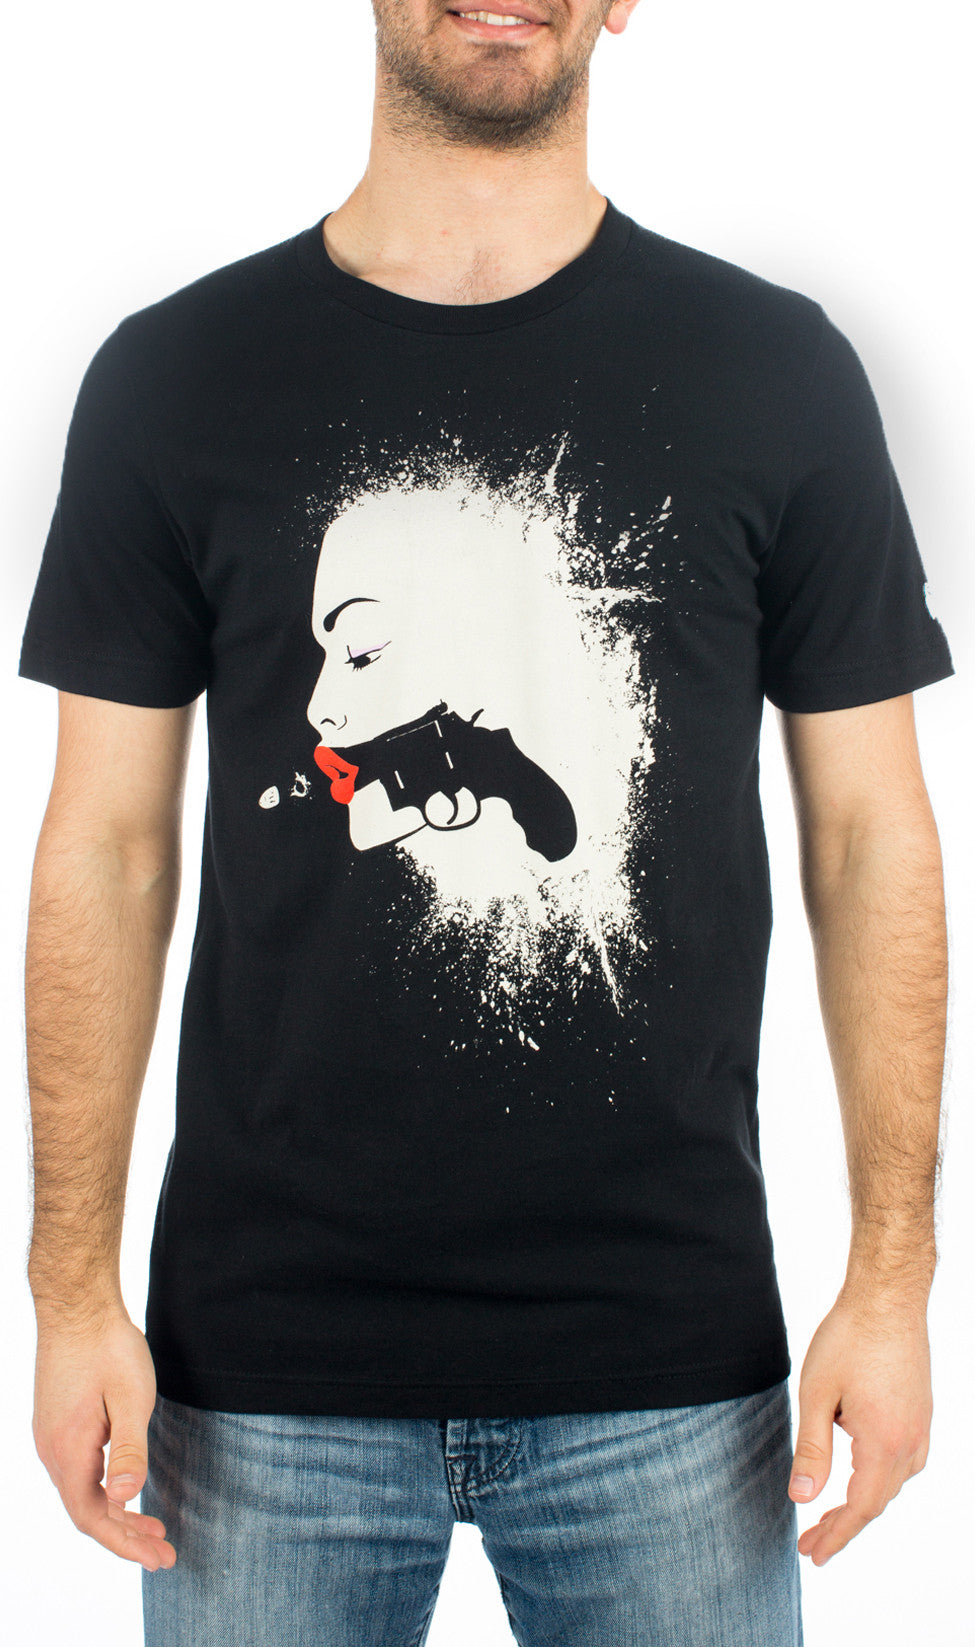 Kiss of Death Shirt - ARKA Urban Streetwear Clothing 9296021df